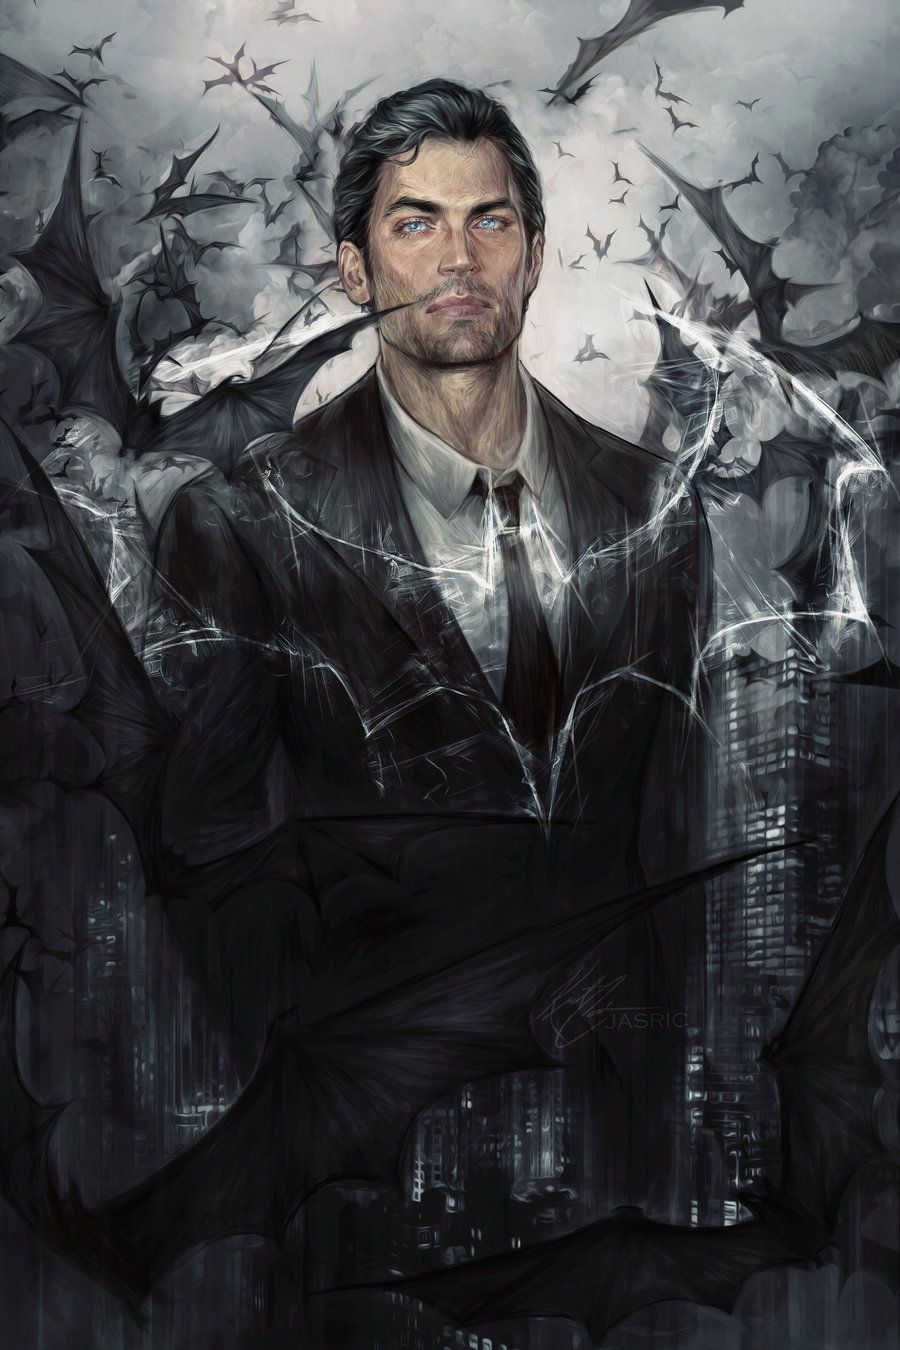 Bruce Wayne by jasric on DeviantArt this may have just become my favorite Bruce Wayne fanart ever.